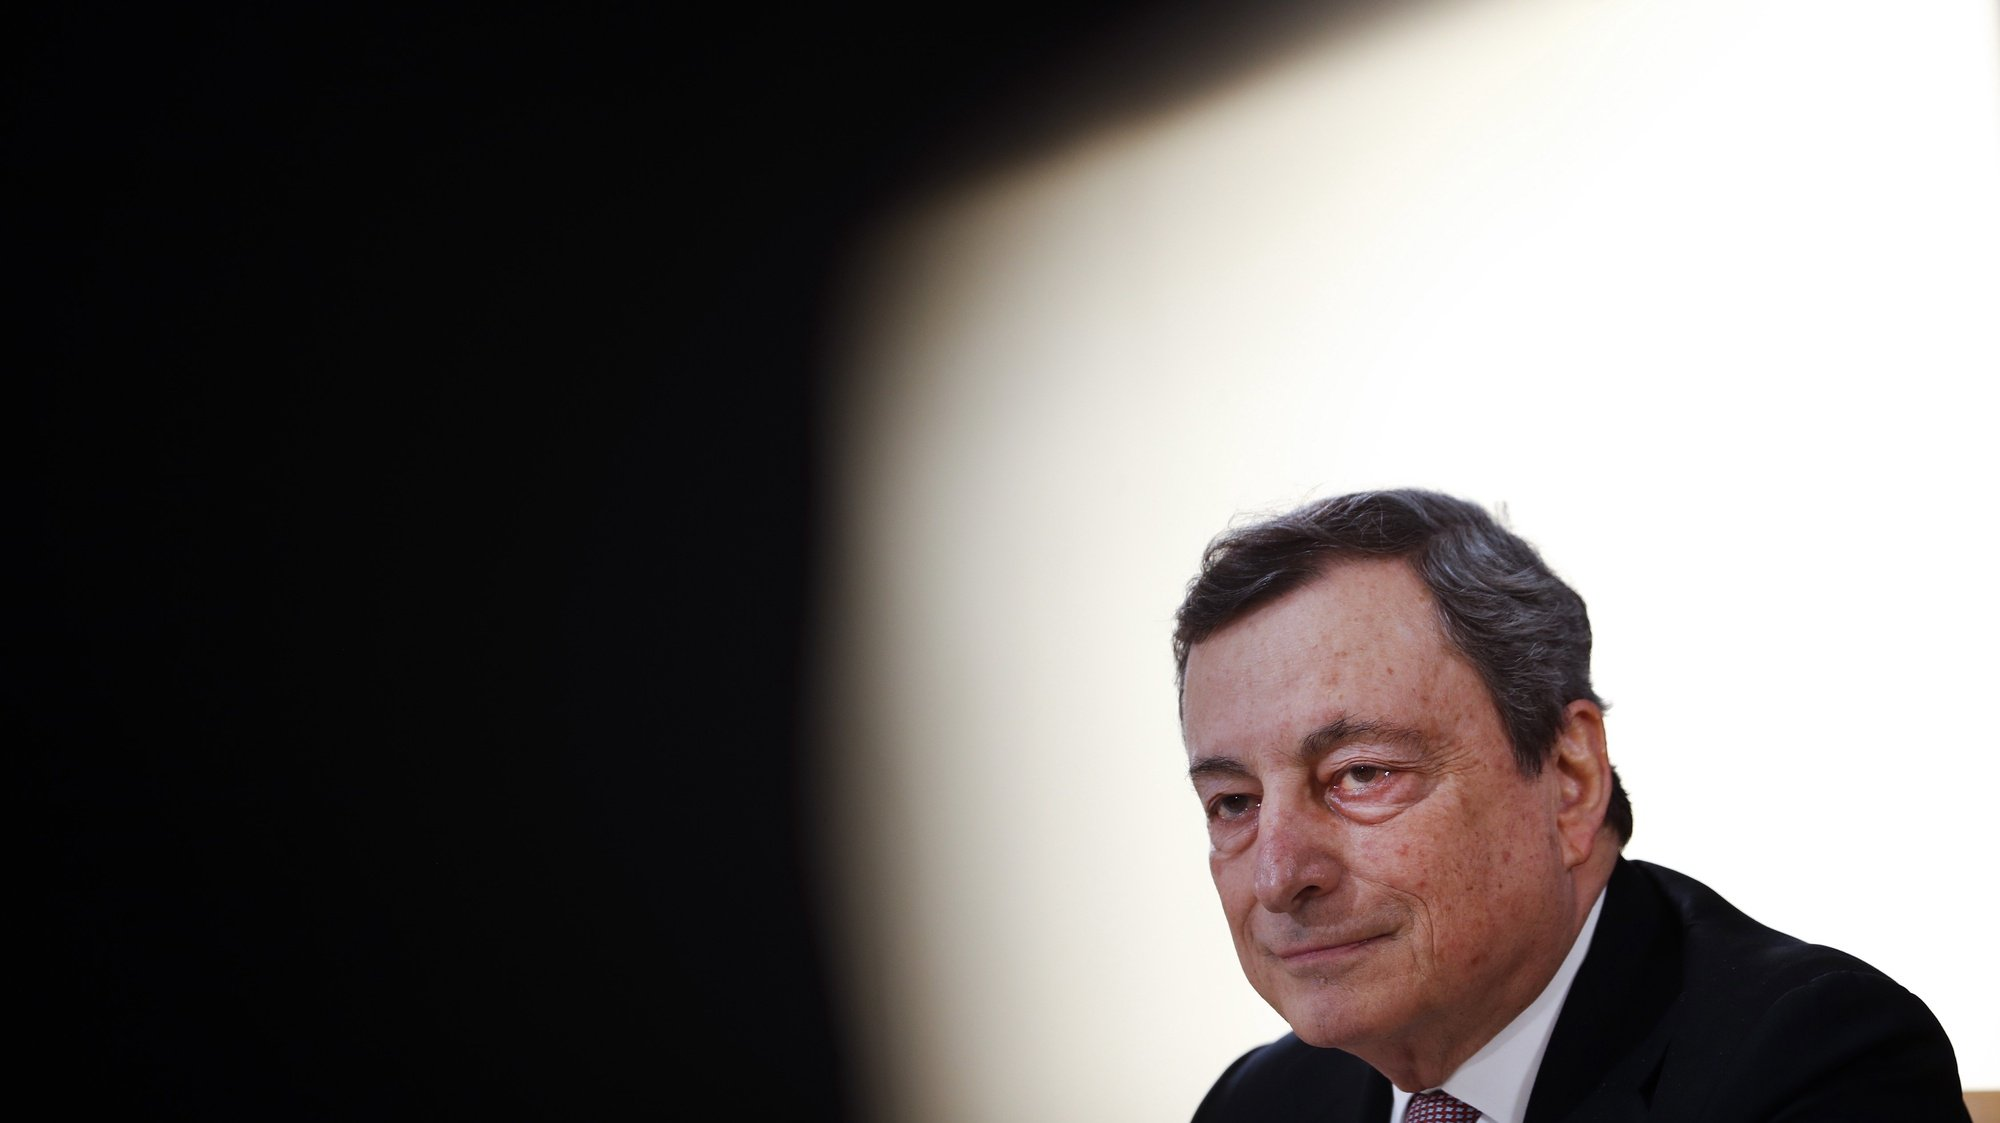 epa09185042 Italy's Prime Minister Mario Draghi speaks during a media conference at an EU summit in Porto, Portugal, 08 May 2021. On 08 May, EU leaders hold an online summit with India's Prime Minister Narendra Modi, covering trade, climate change and help with India's COVID-19 surge.  EPA/Francisco Seco / POOL